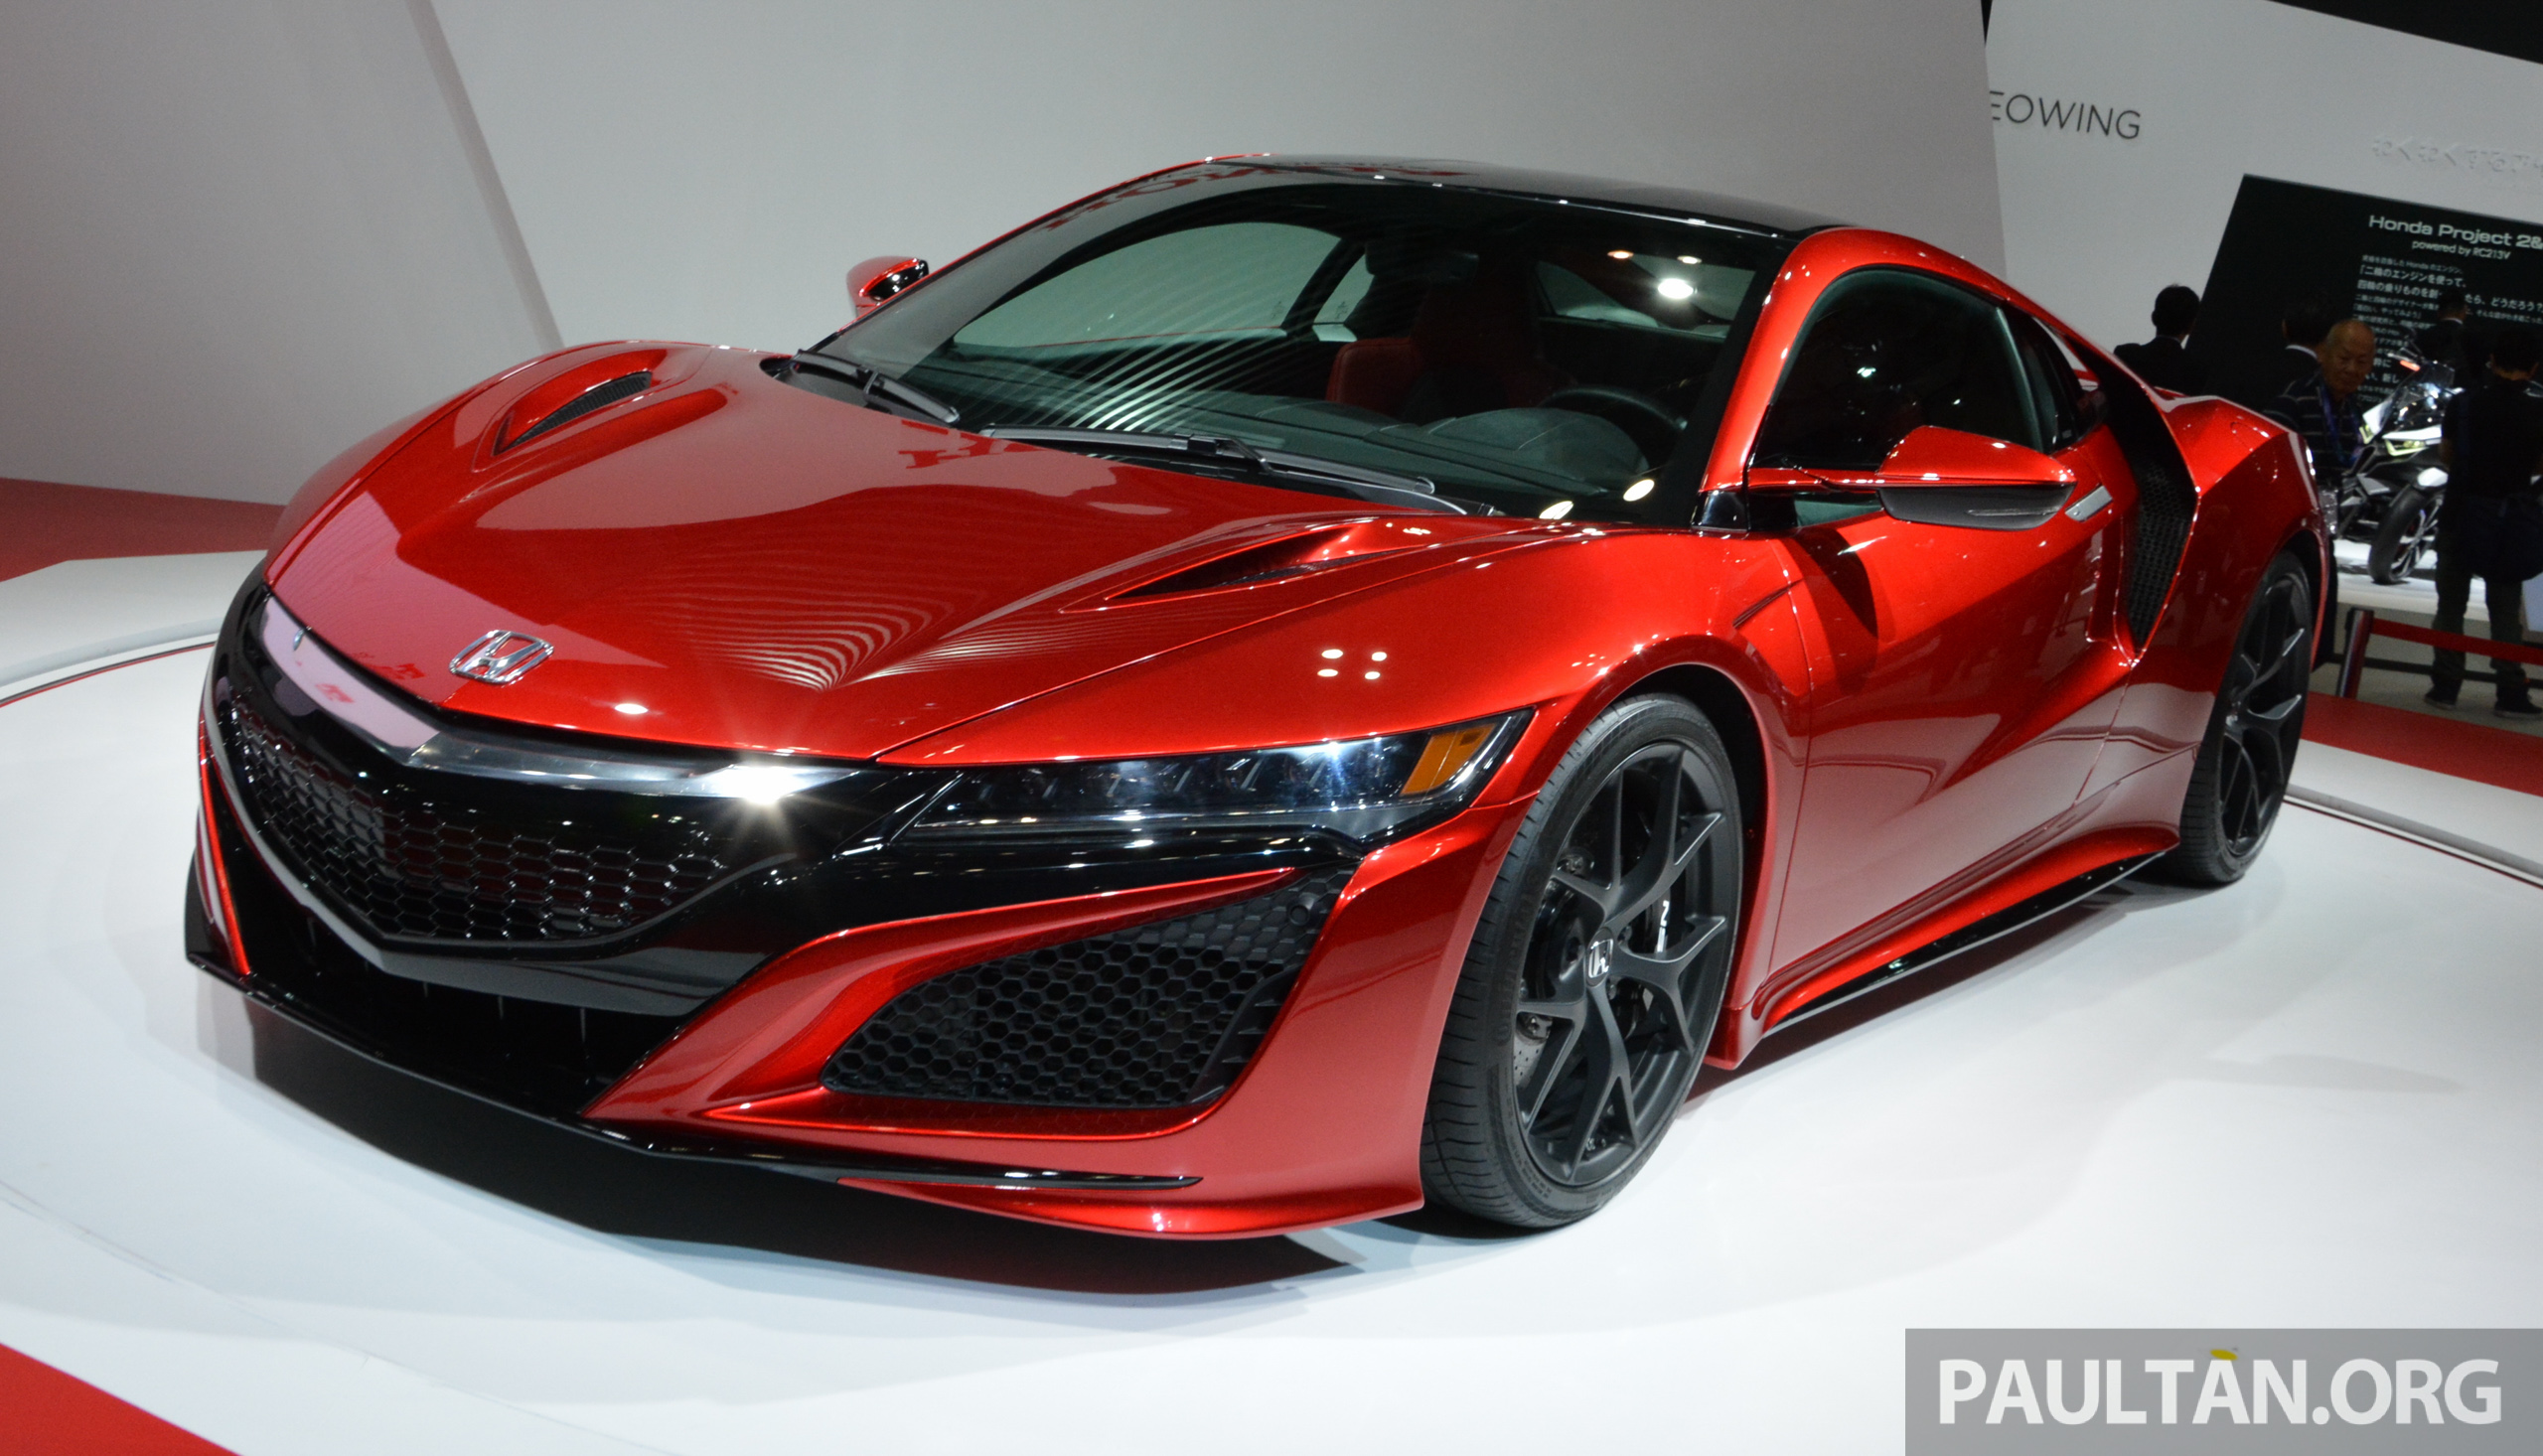 Driven 2017 Honda Nsx Everyday Greatness Again Image